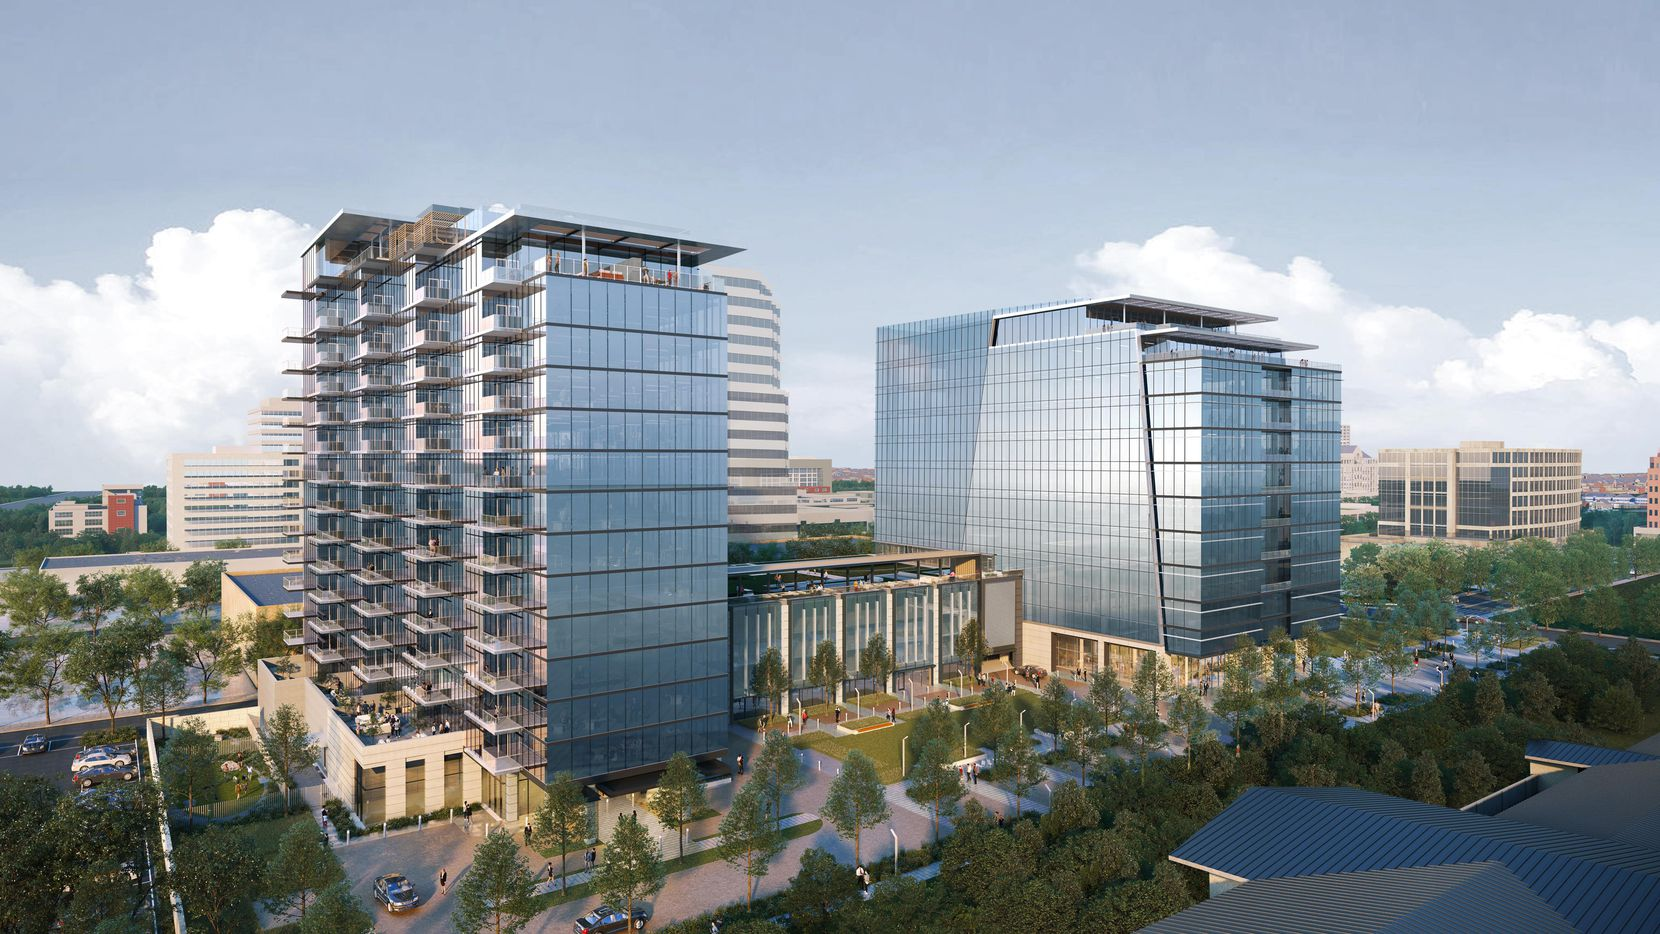 Lincoln Property Co. plans to building two towers - one with offices and one residential - on Douglas Avenue just east of the Dallas North Tollway in Preston Center.